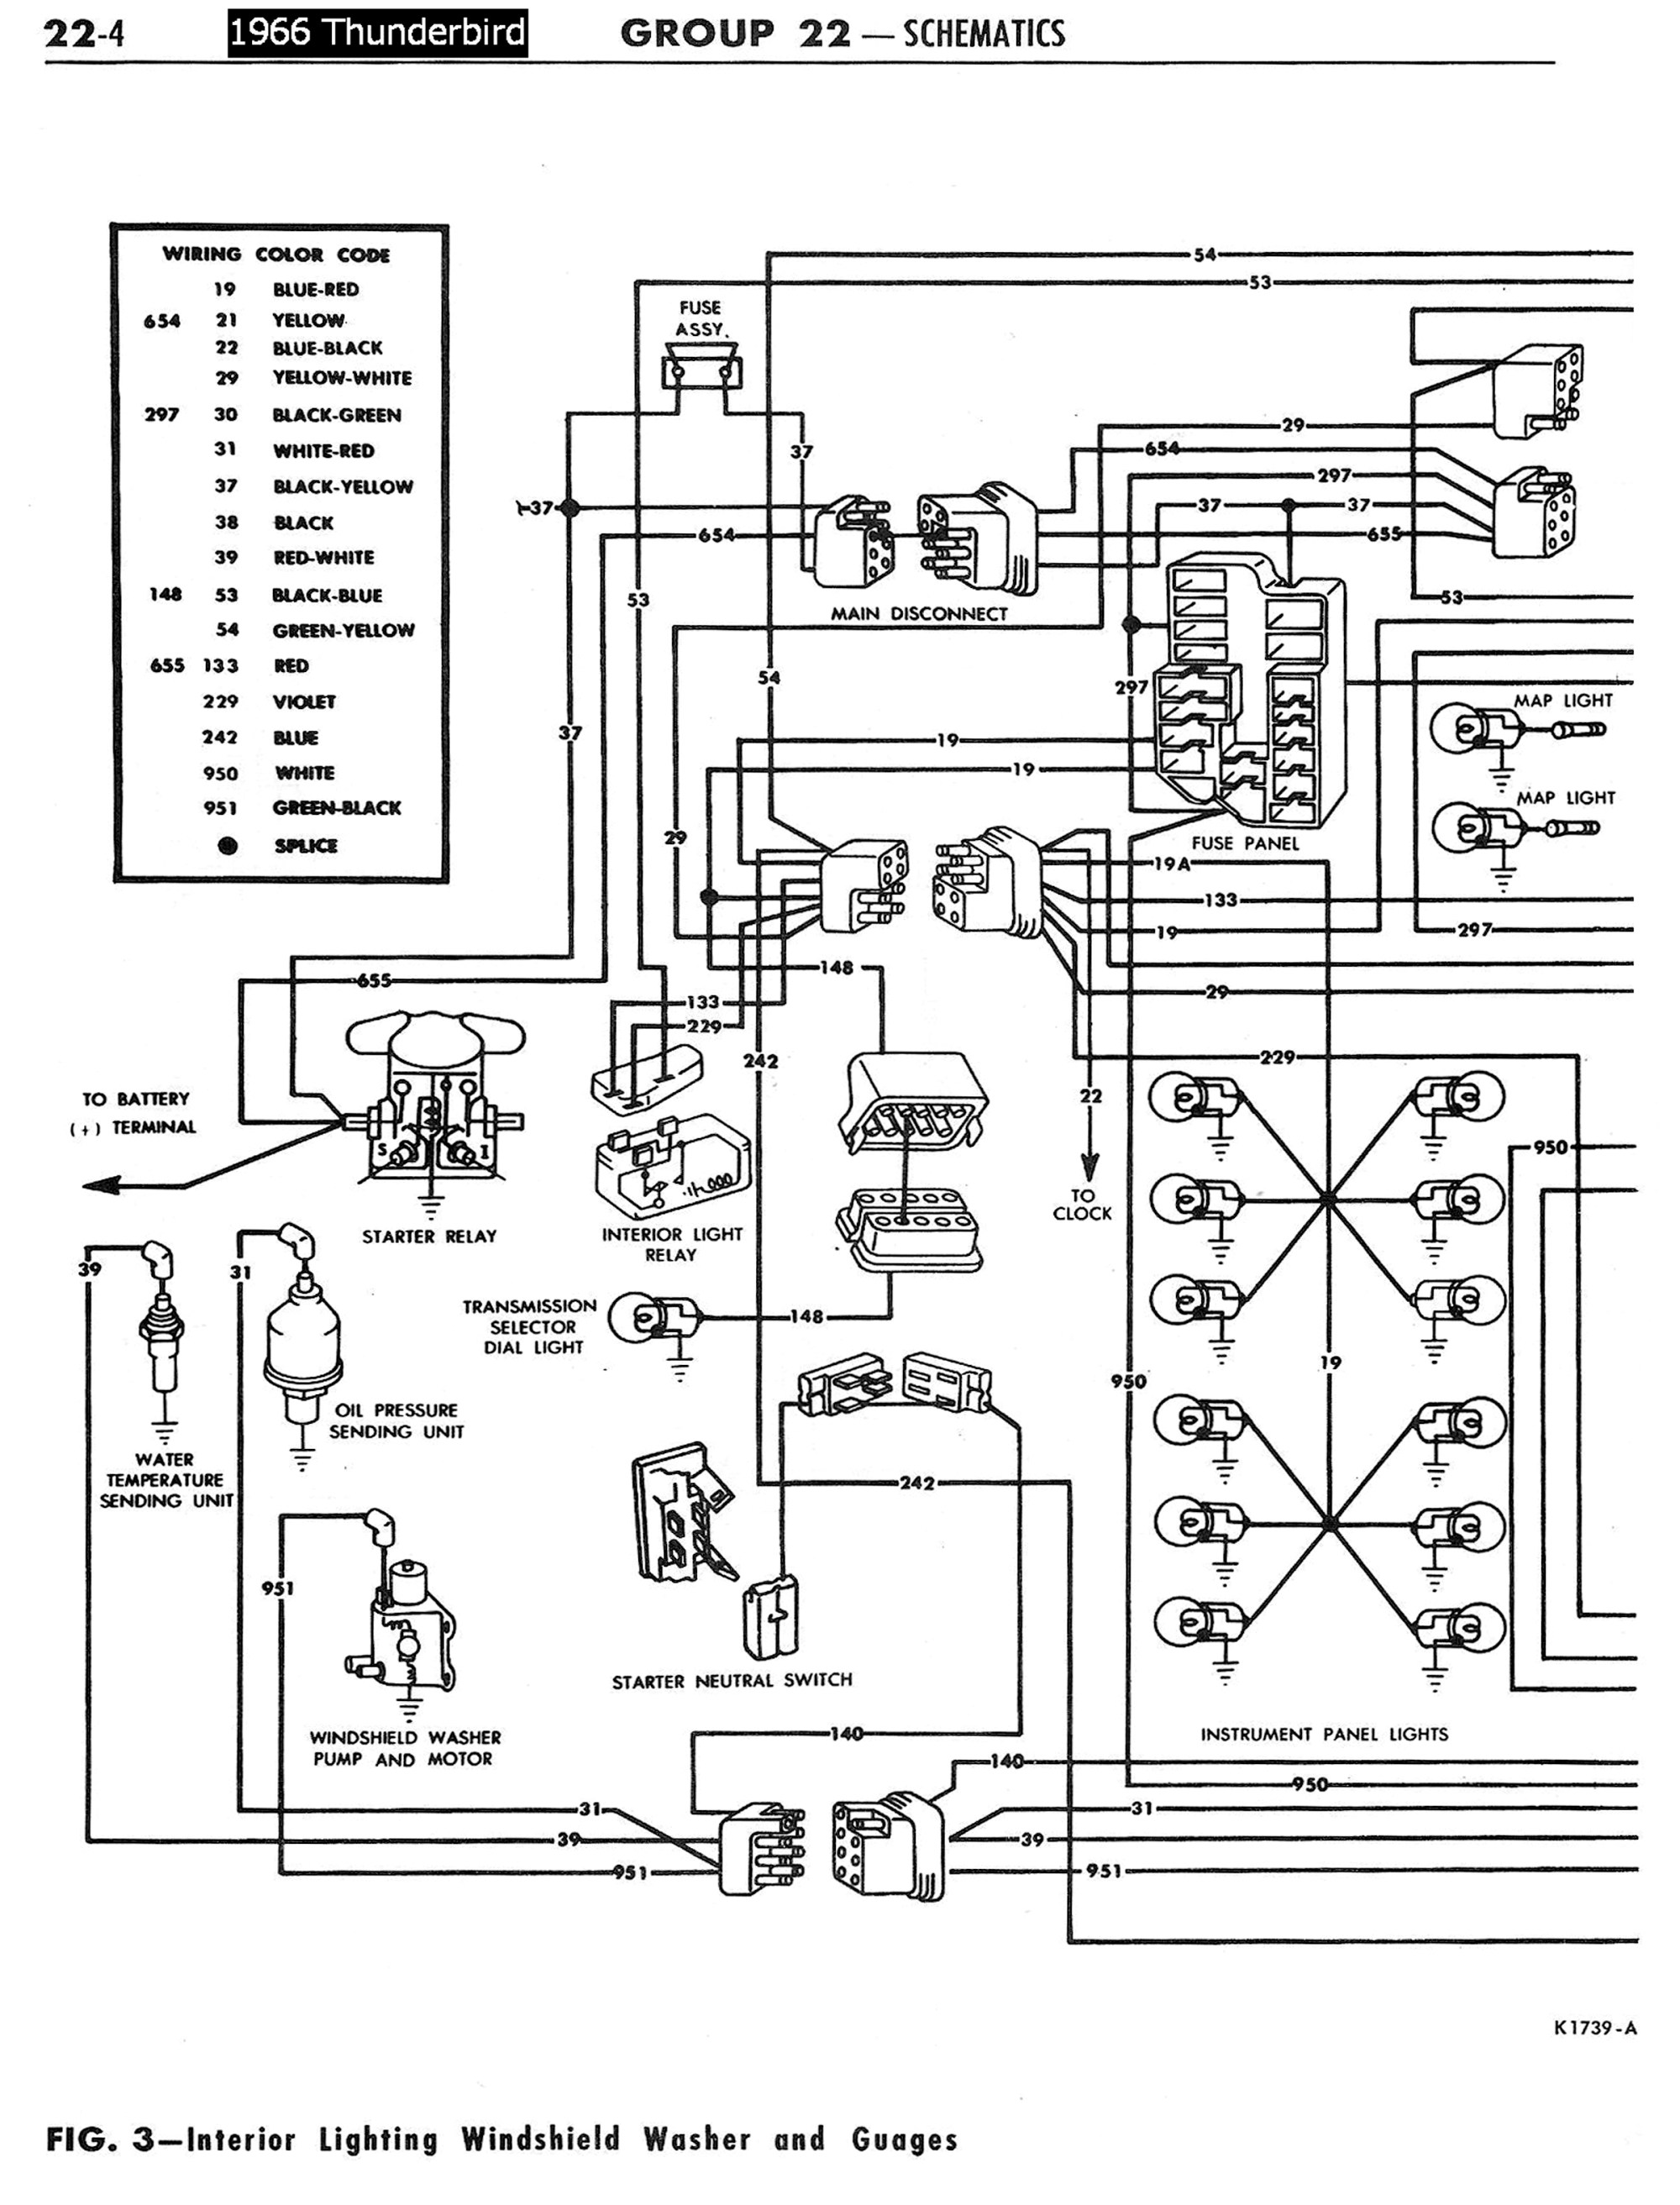 hight resolution of 1966 ford thunderbird brake wiring diagram